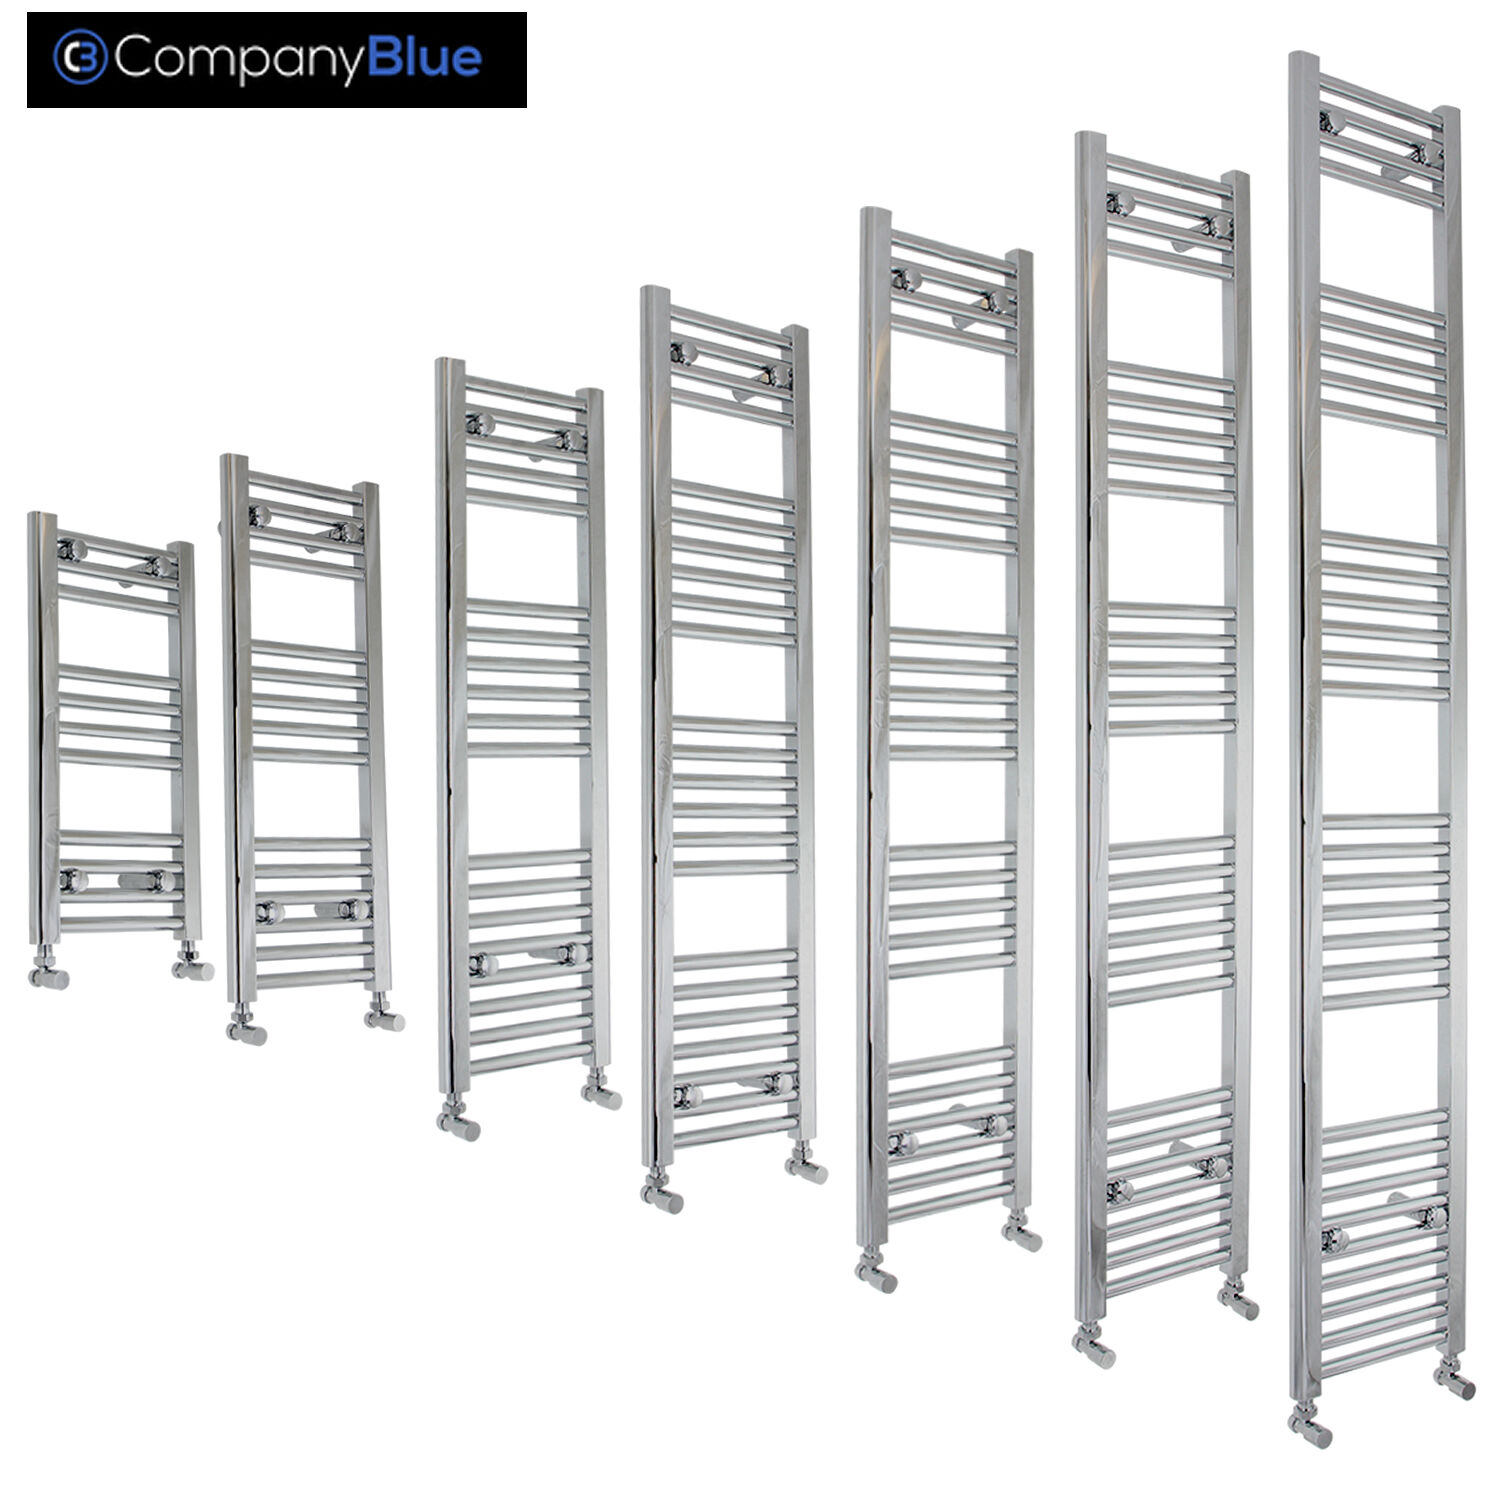 400mm Wide Designer Chrome Heated Towel Rail Radiator Ladder Straight Bathroom